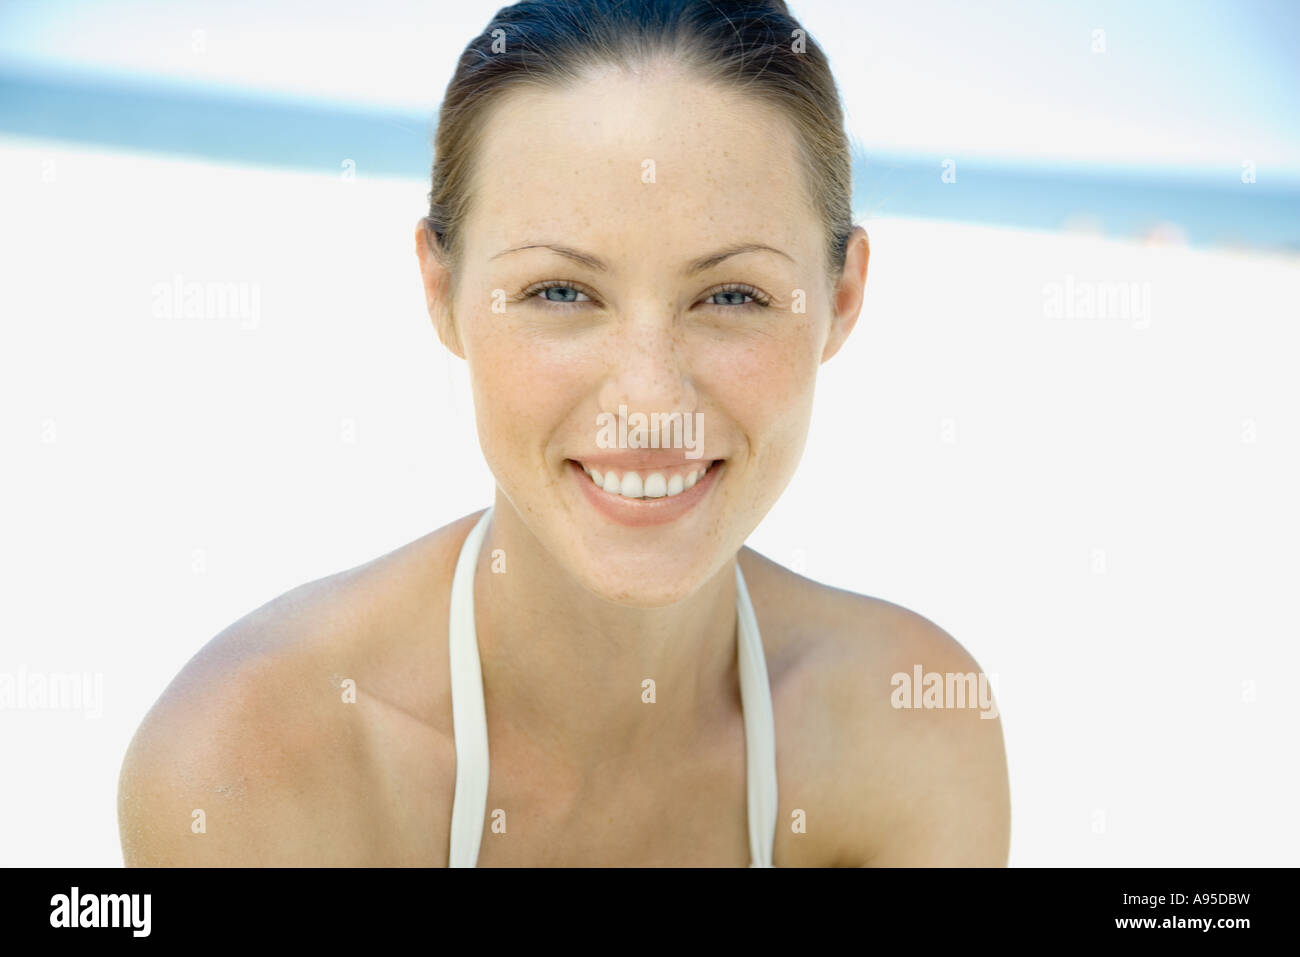 Woman on beach, smiling at camera, head and shoulders - Stock Image